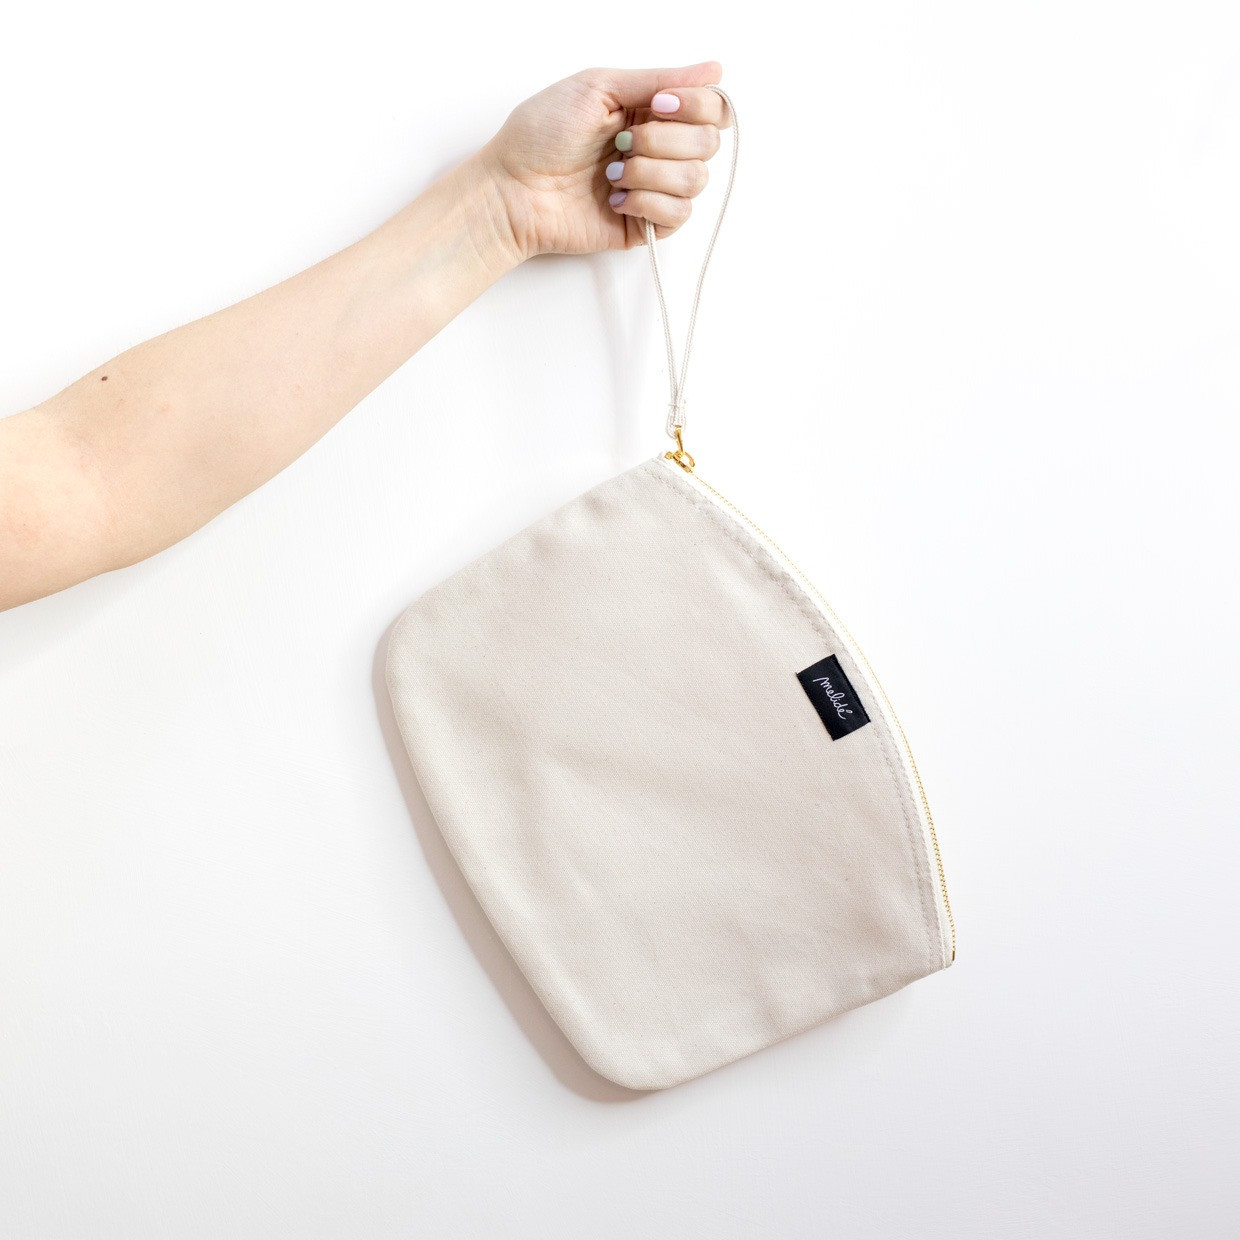 The ZIPPED POUCH L - Heart essential